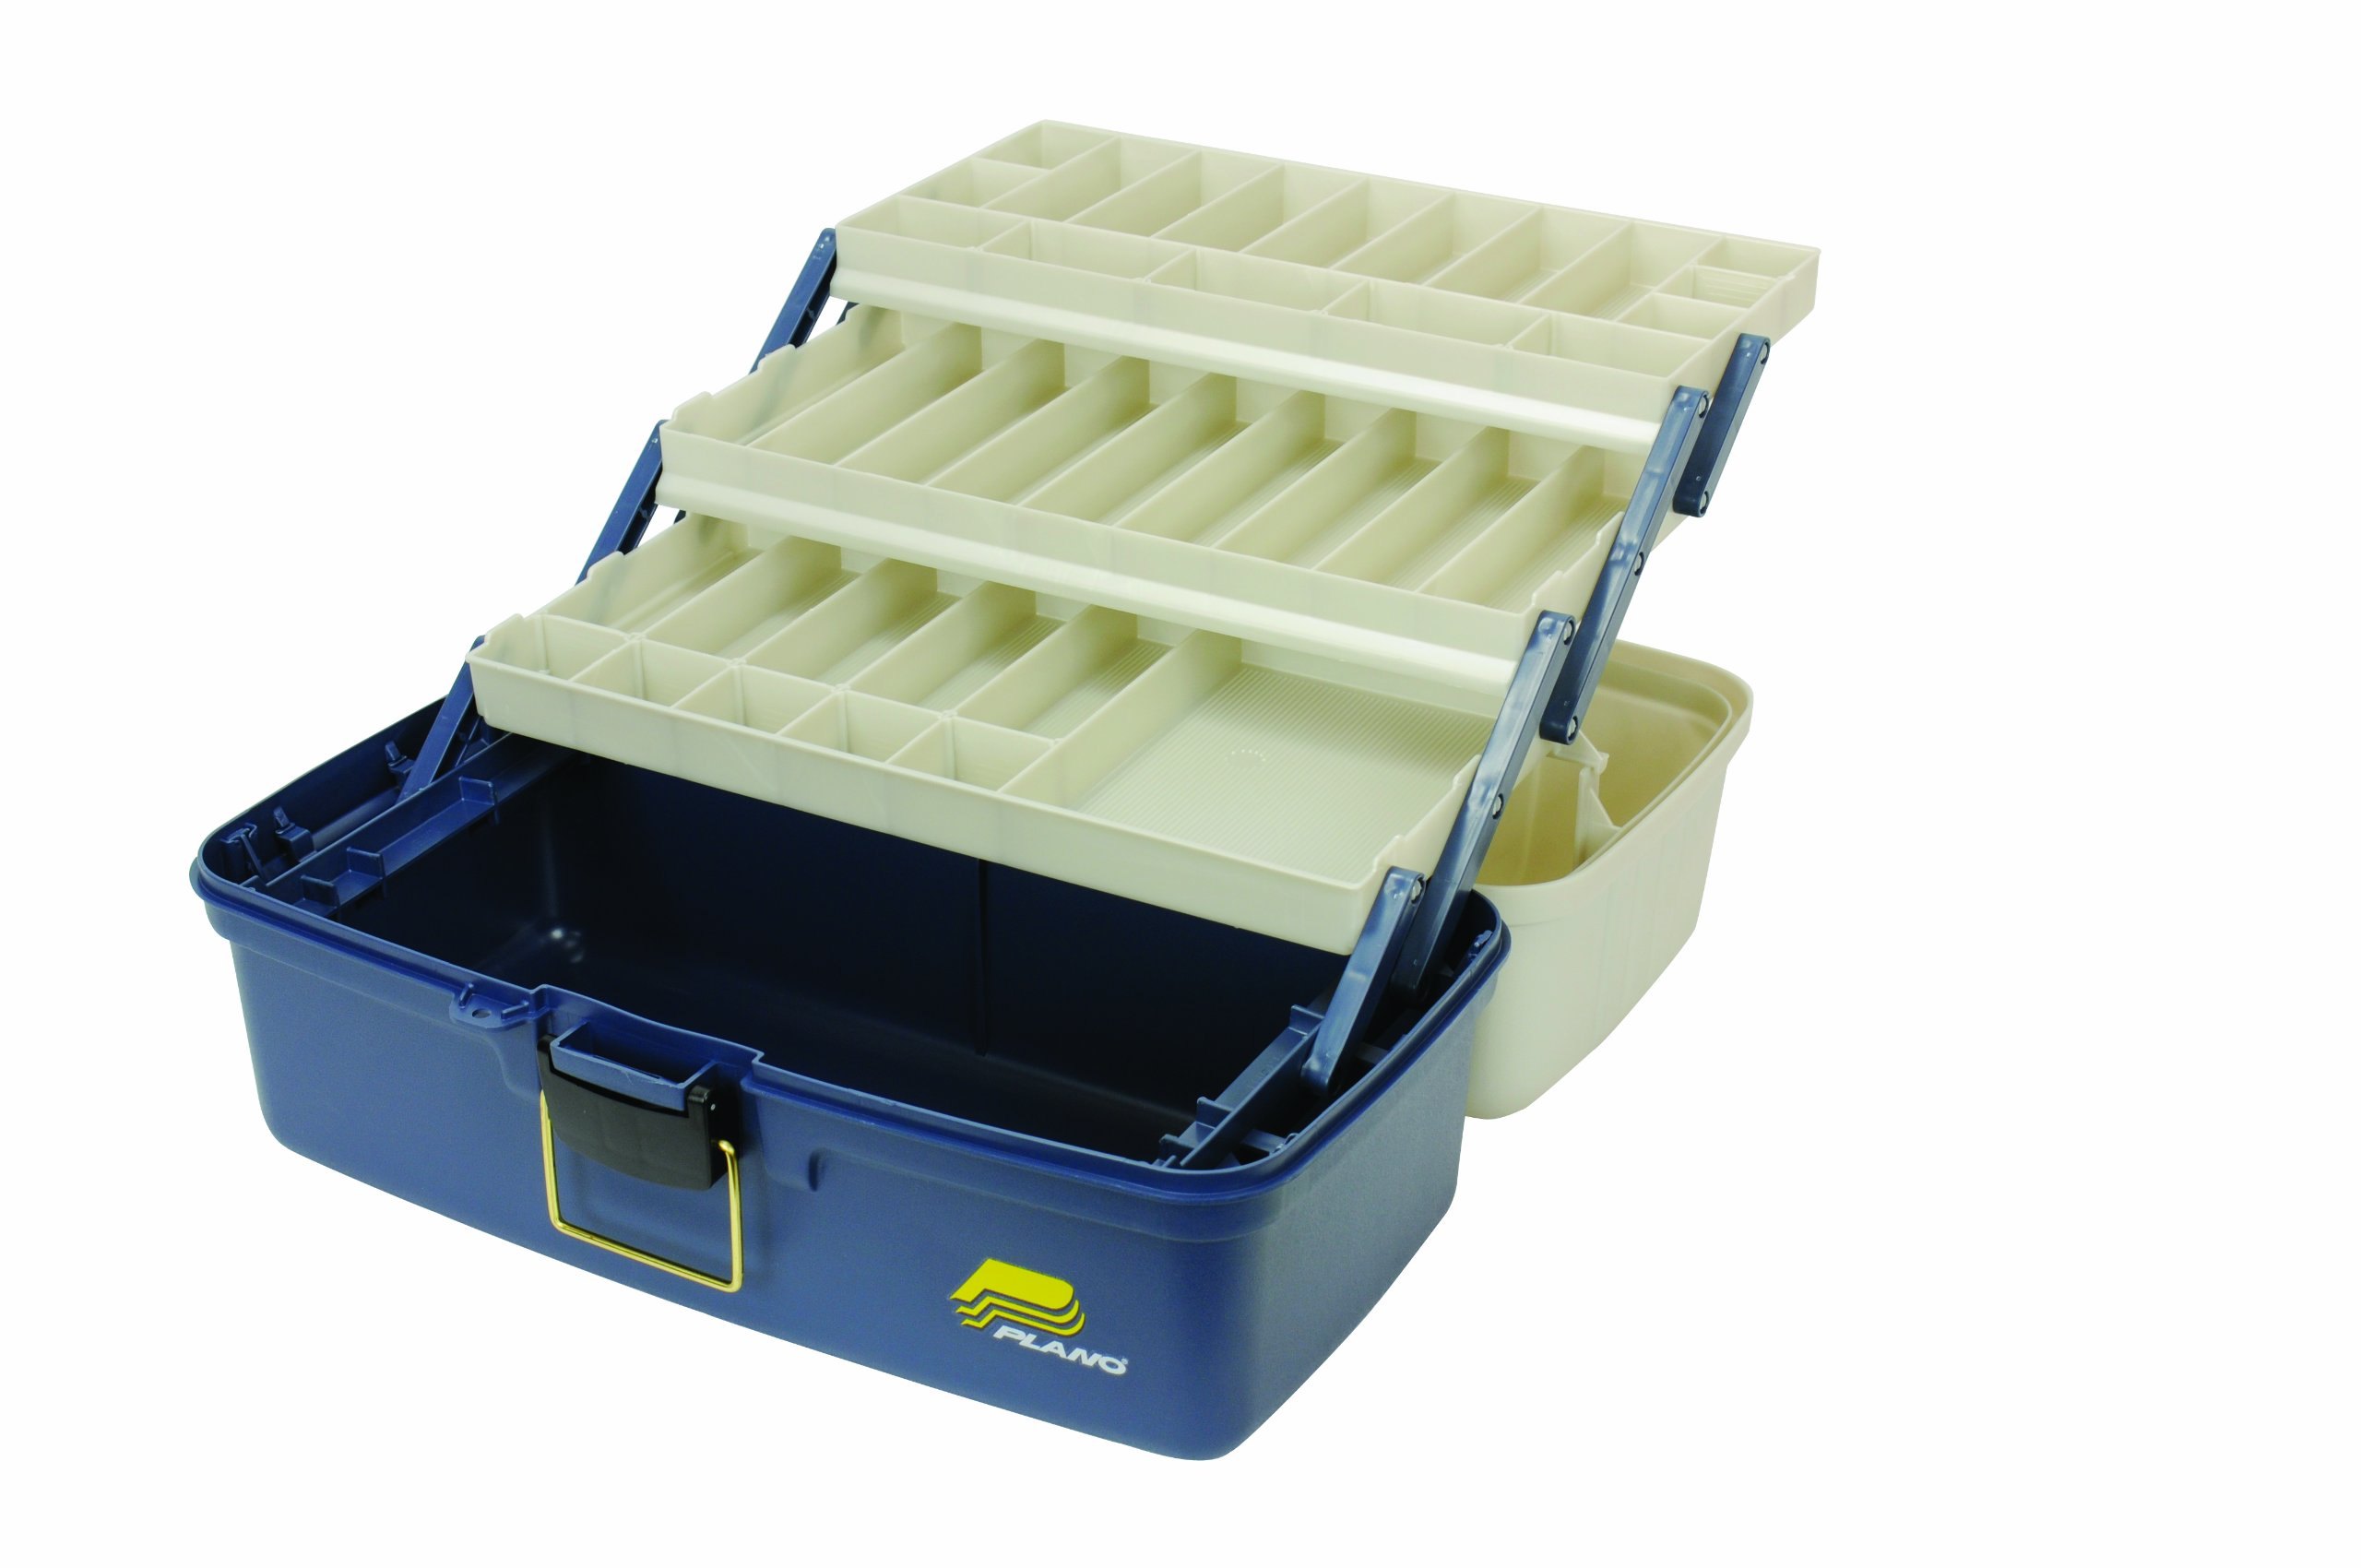 Plano xl 3 tray tackle box with large bulk storage new ebay for Best fishing tackle box